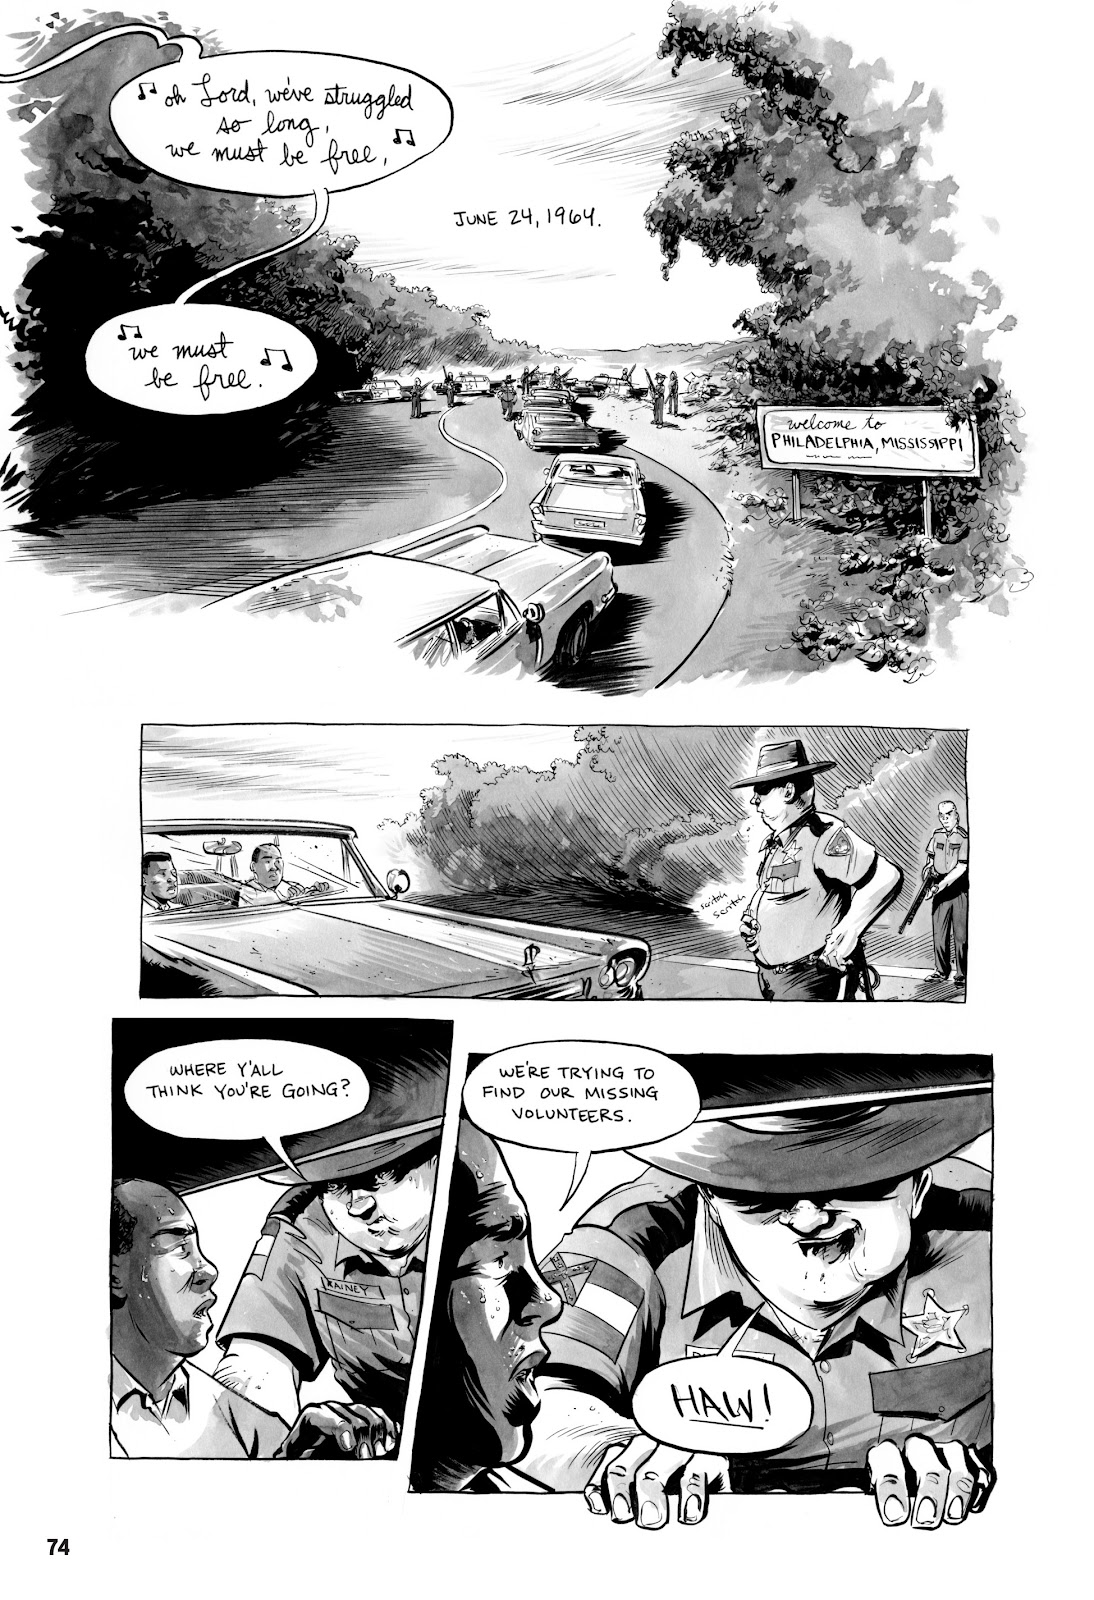 March 3 Page 71